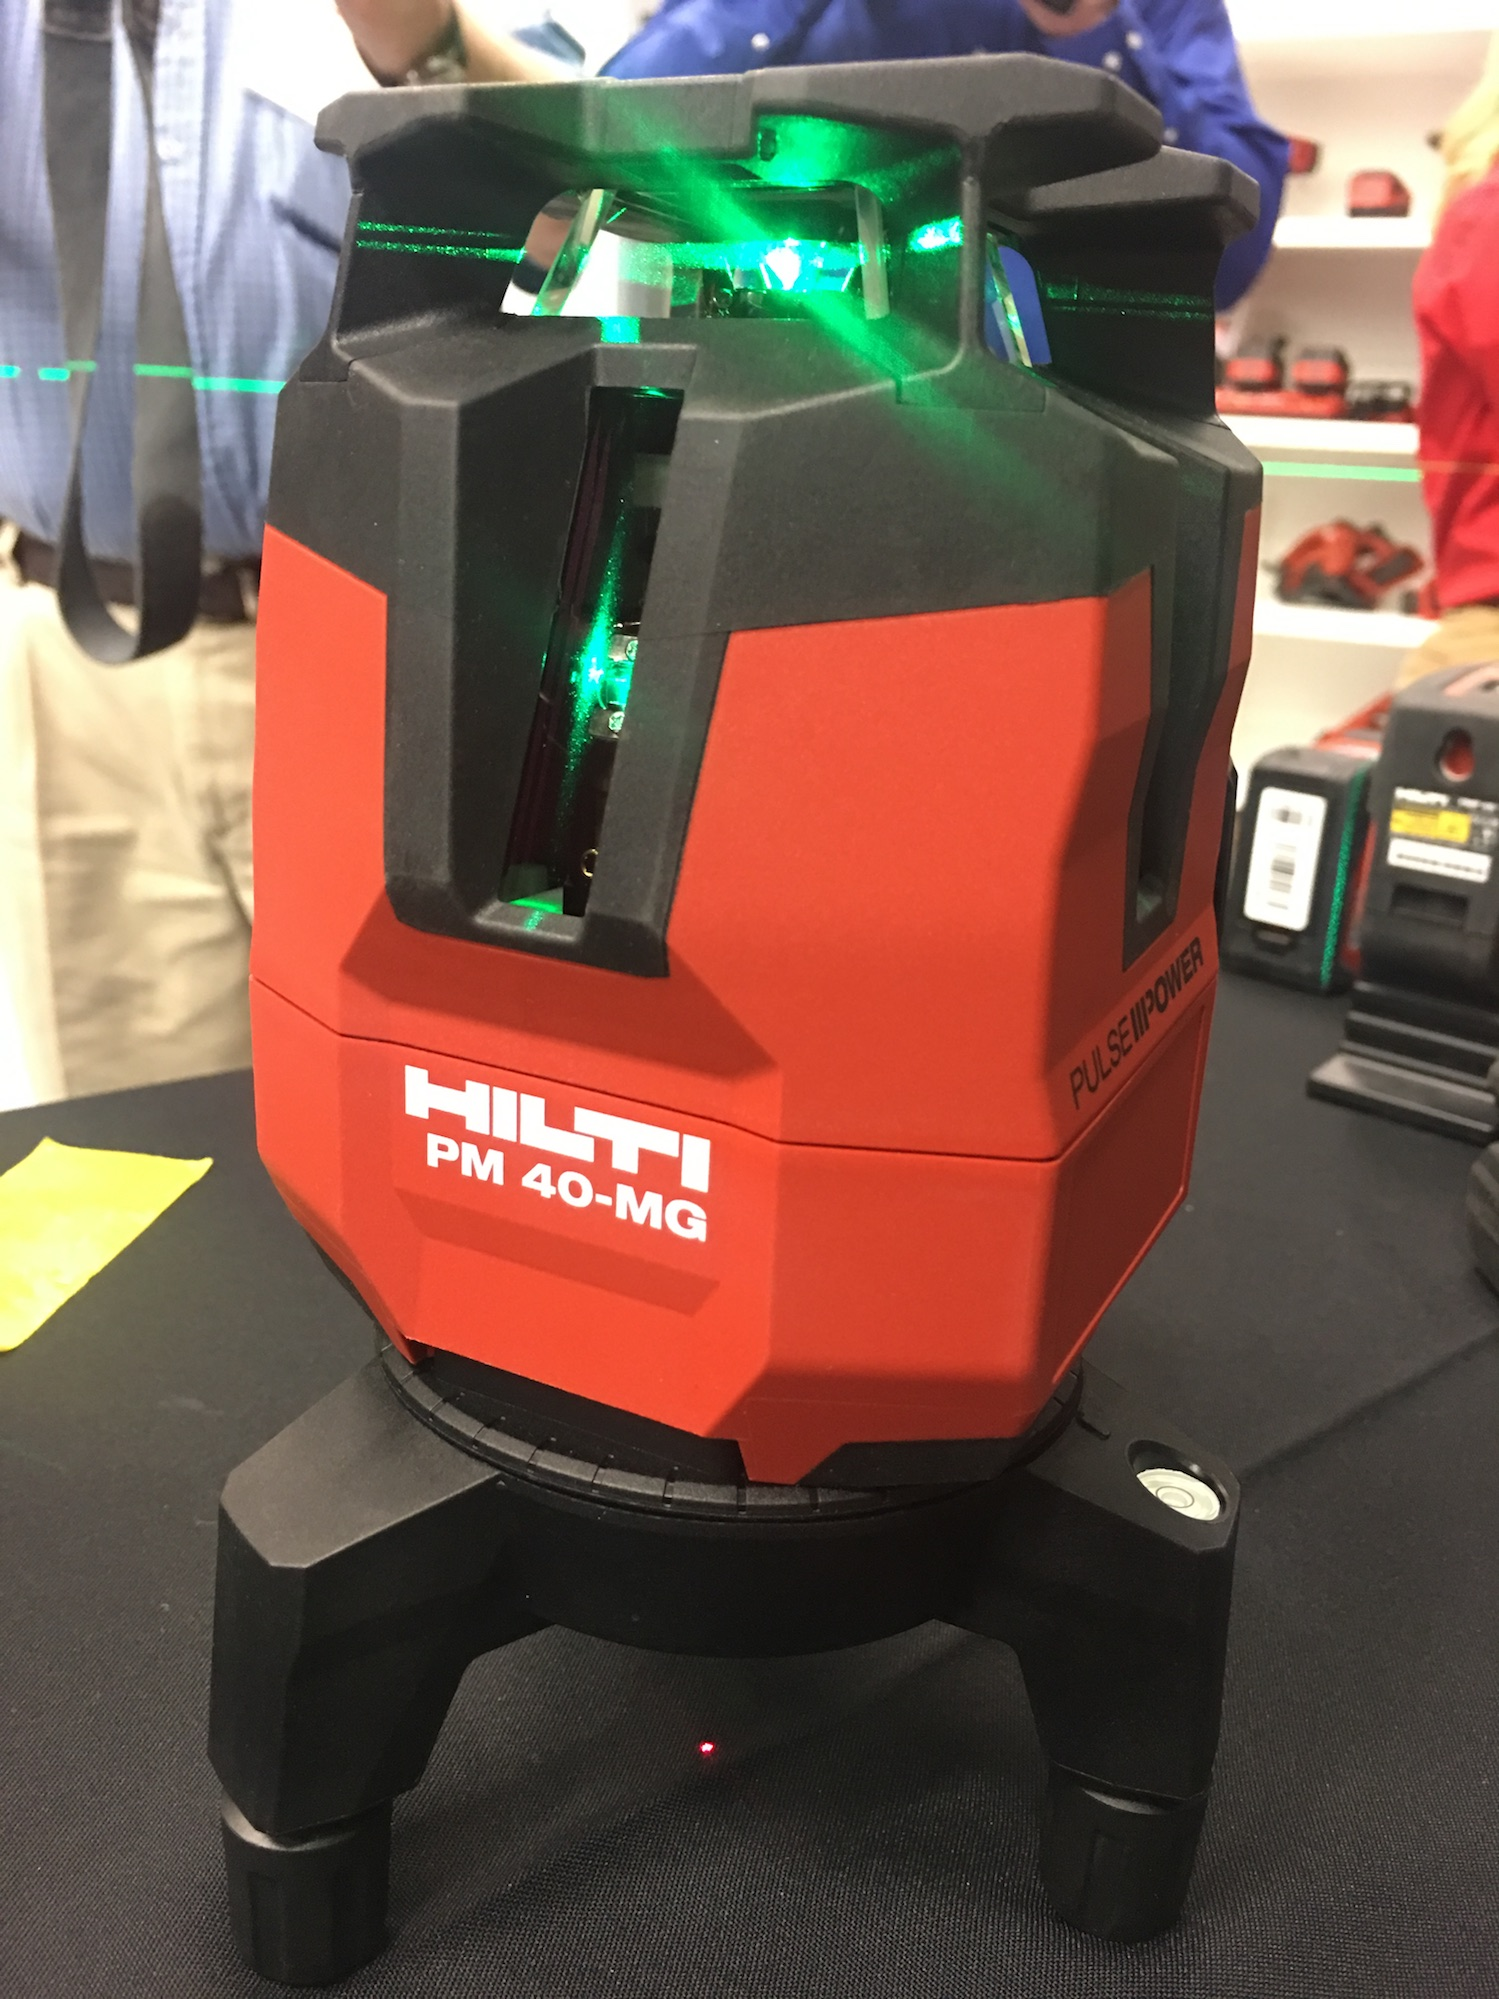 Hilti Innovation Day 2017 Tools Of The Trade